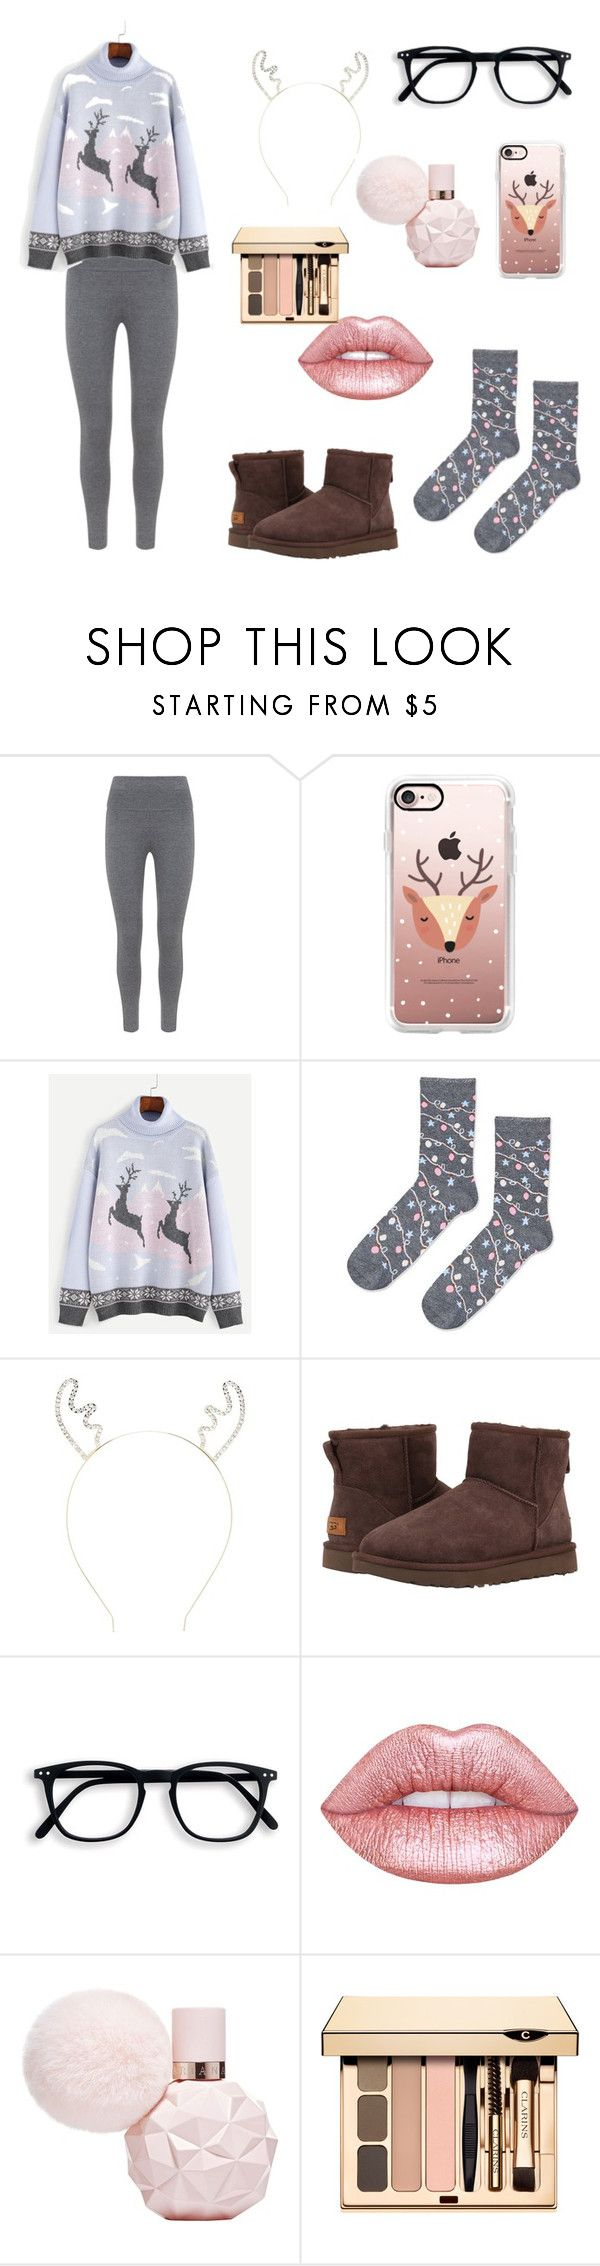 """""""Christmas time is here!!"""" by foodiefashion ❤ liked on Polyvore featuring Mint Velvet, Casetify, Topshop, Forever 21, UGG Australia, Lime Crime, Christmas, ootd and winterstyle"""